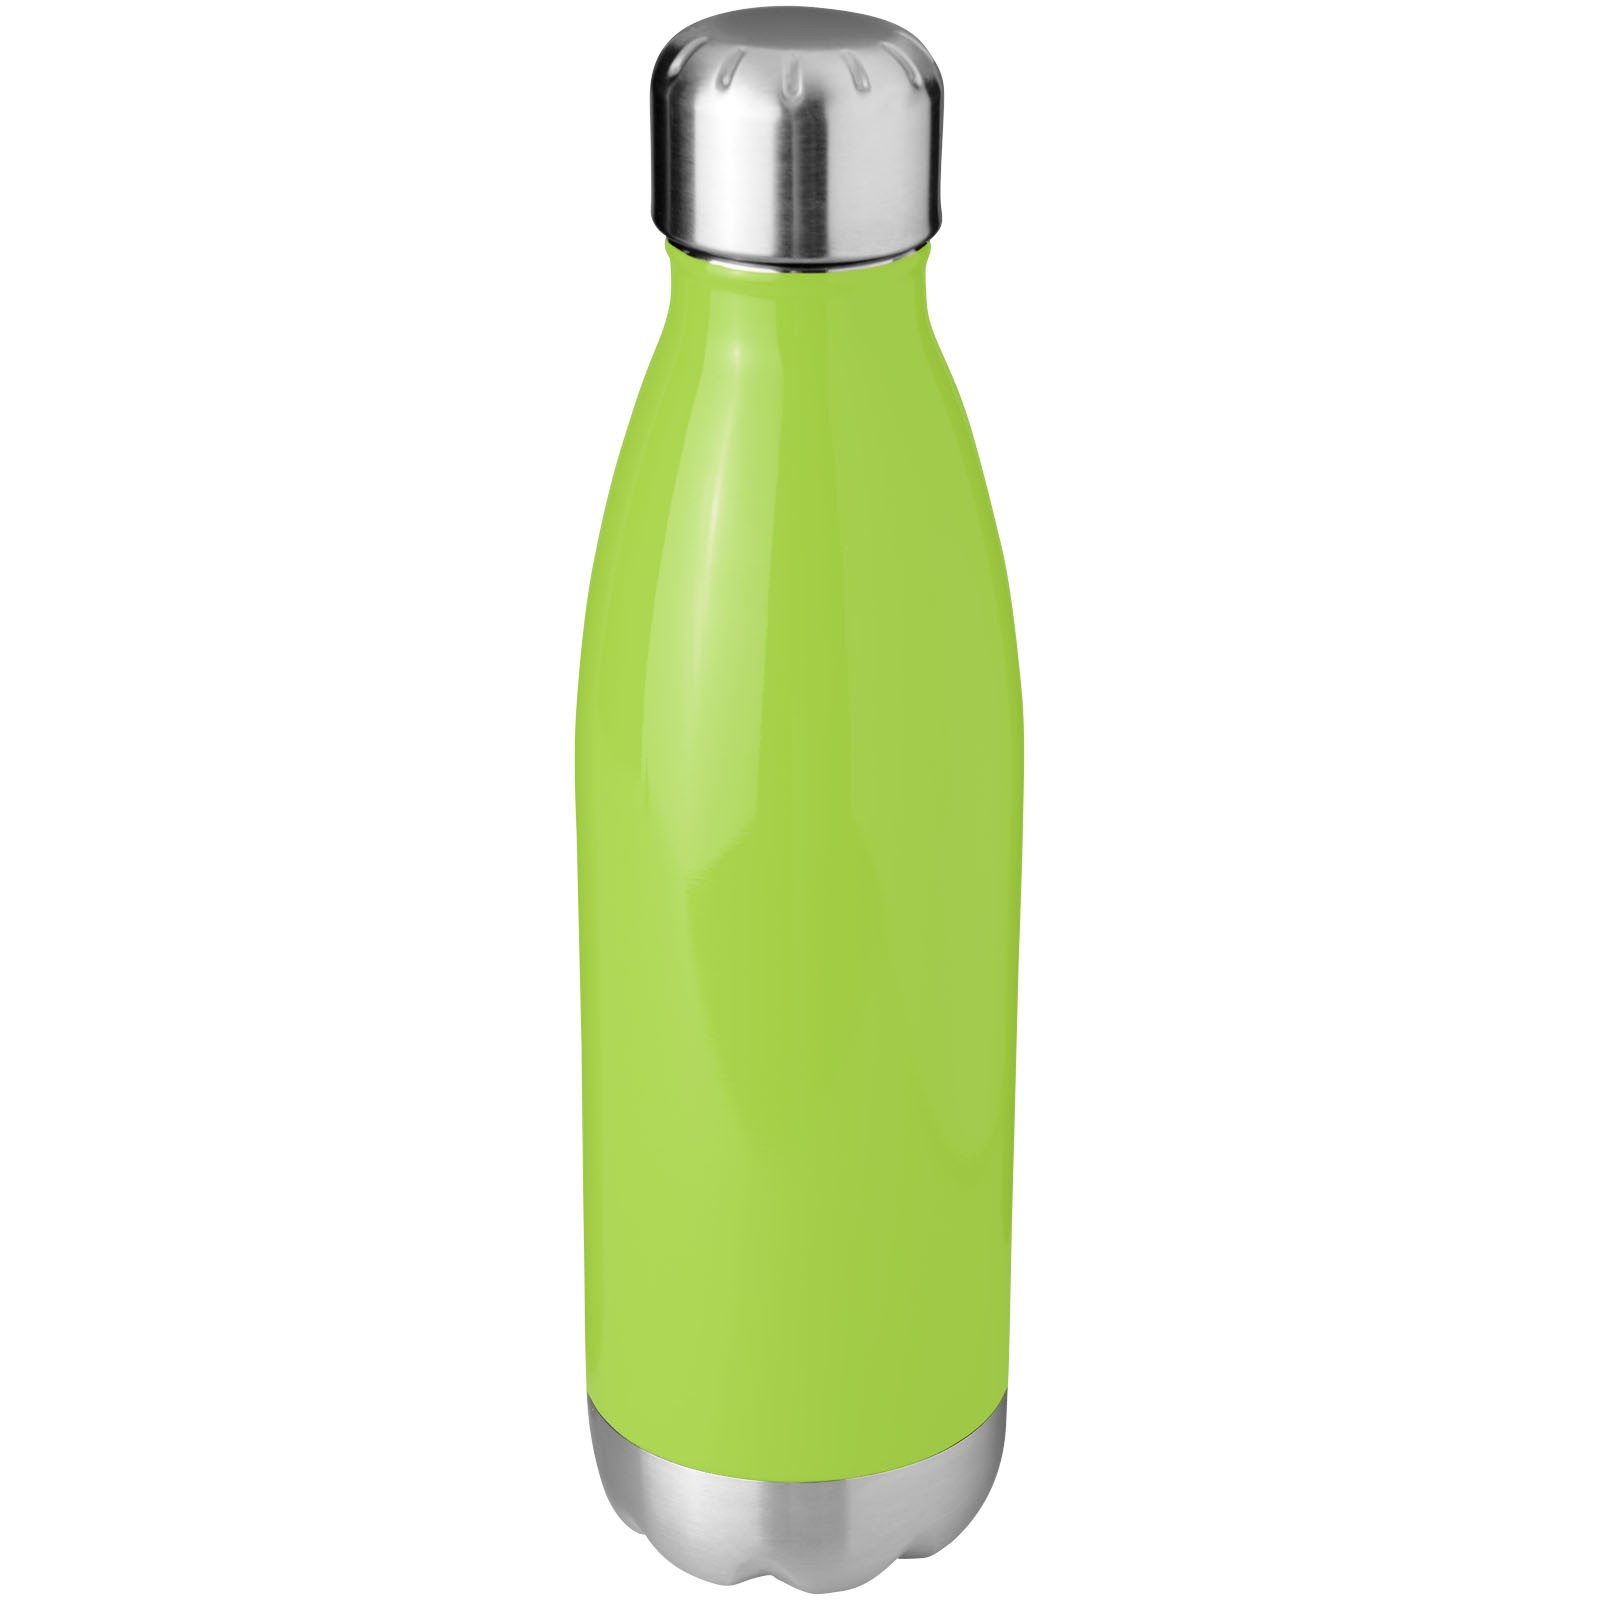 Arsenal 510 ml vacuum insulated bottle - Lime